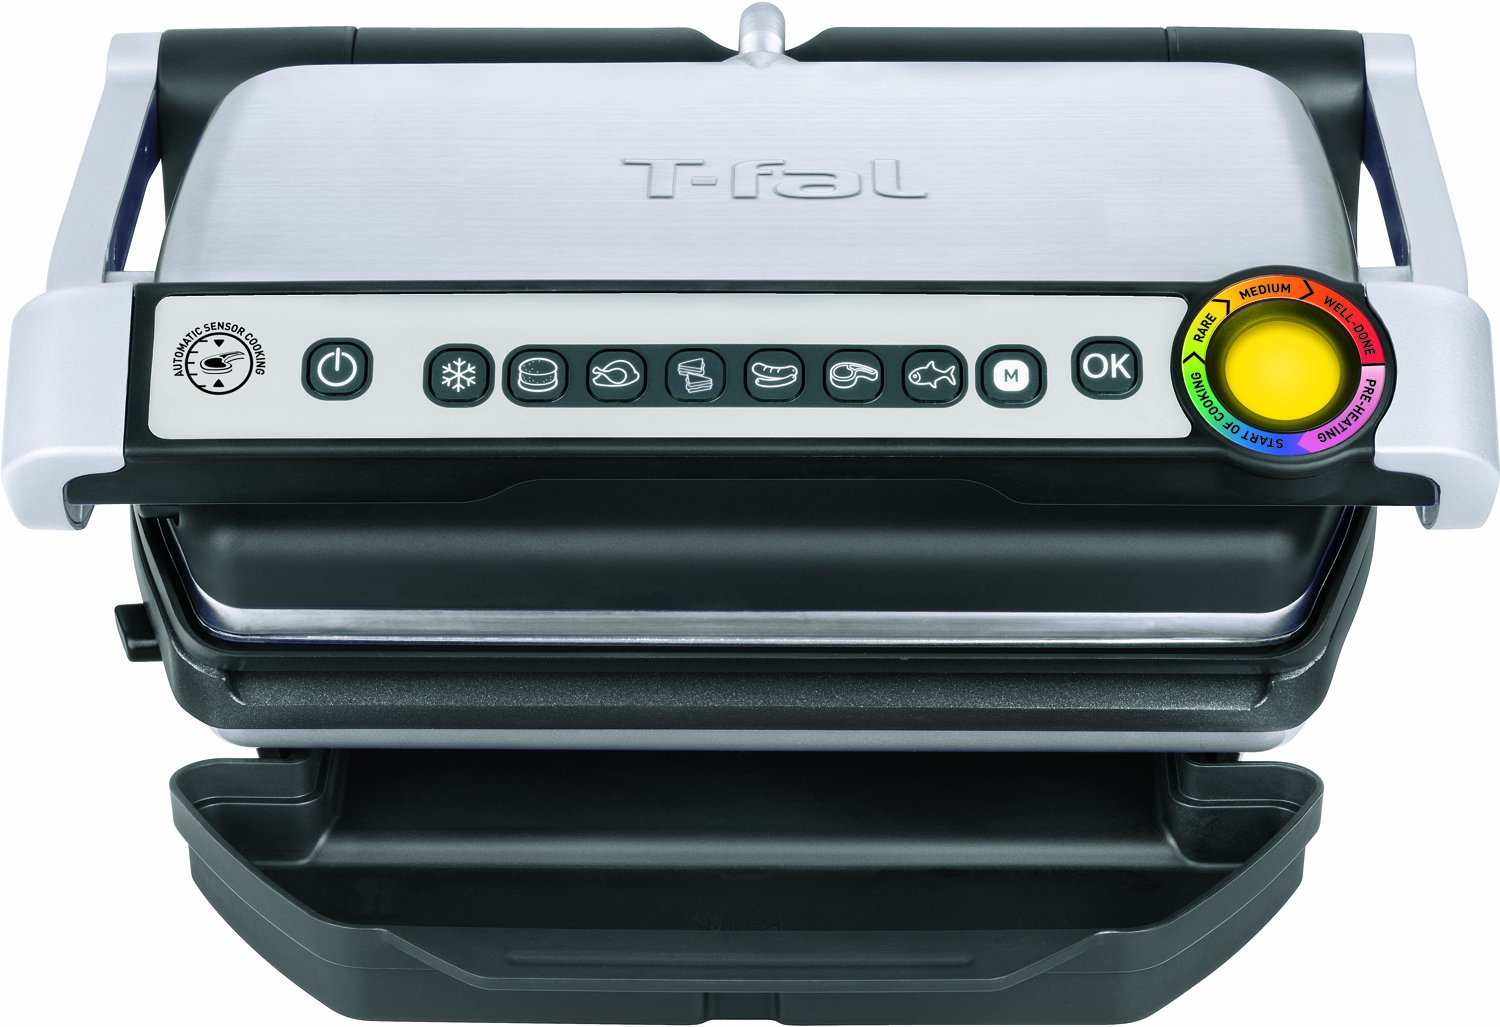 T-fal GC70 OptiGrill Electric Grill, Indoor Grill, Removable Nonstick Dishwasher Safe Plates